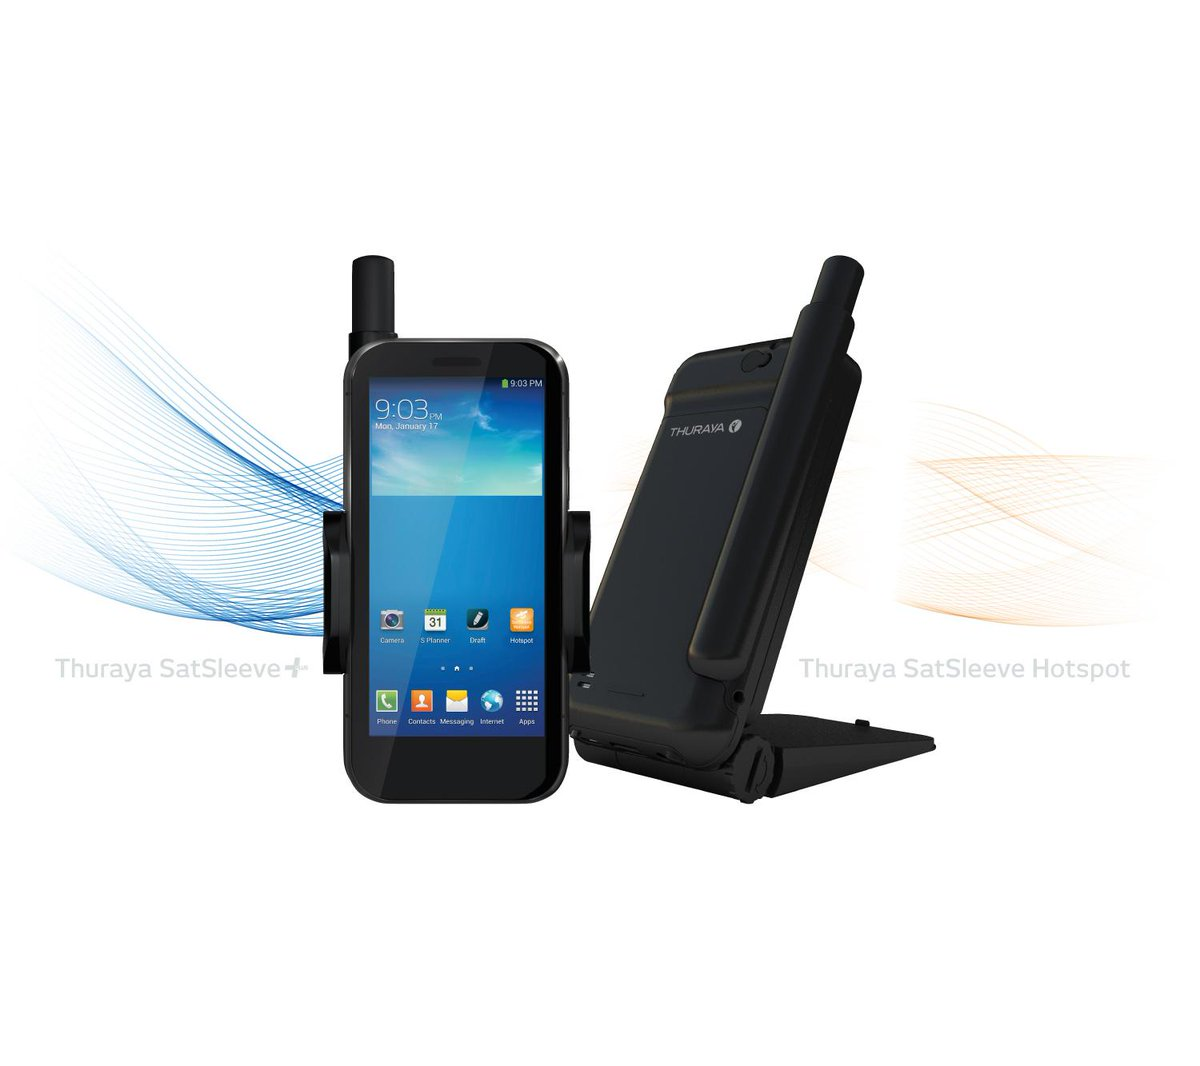 Thuraya Satsleeve+ and Hotspot